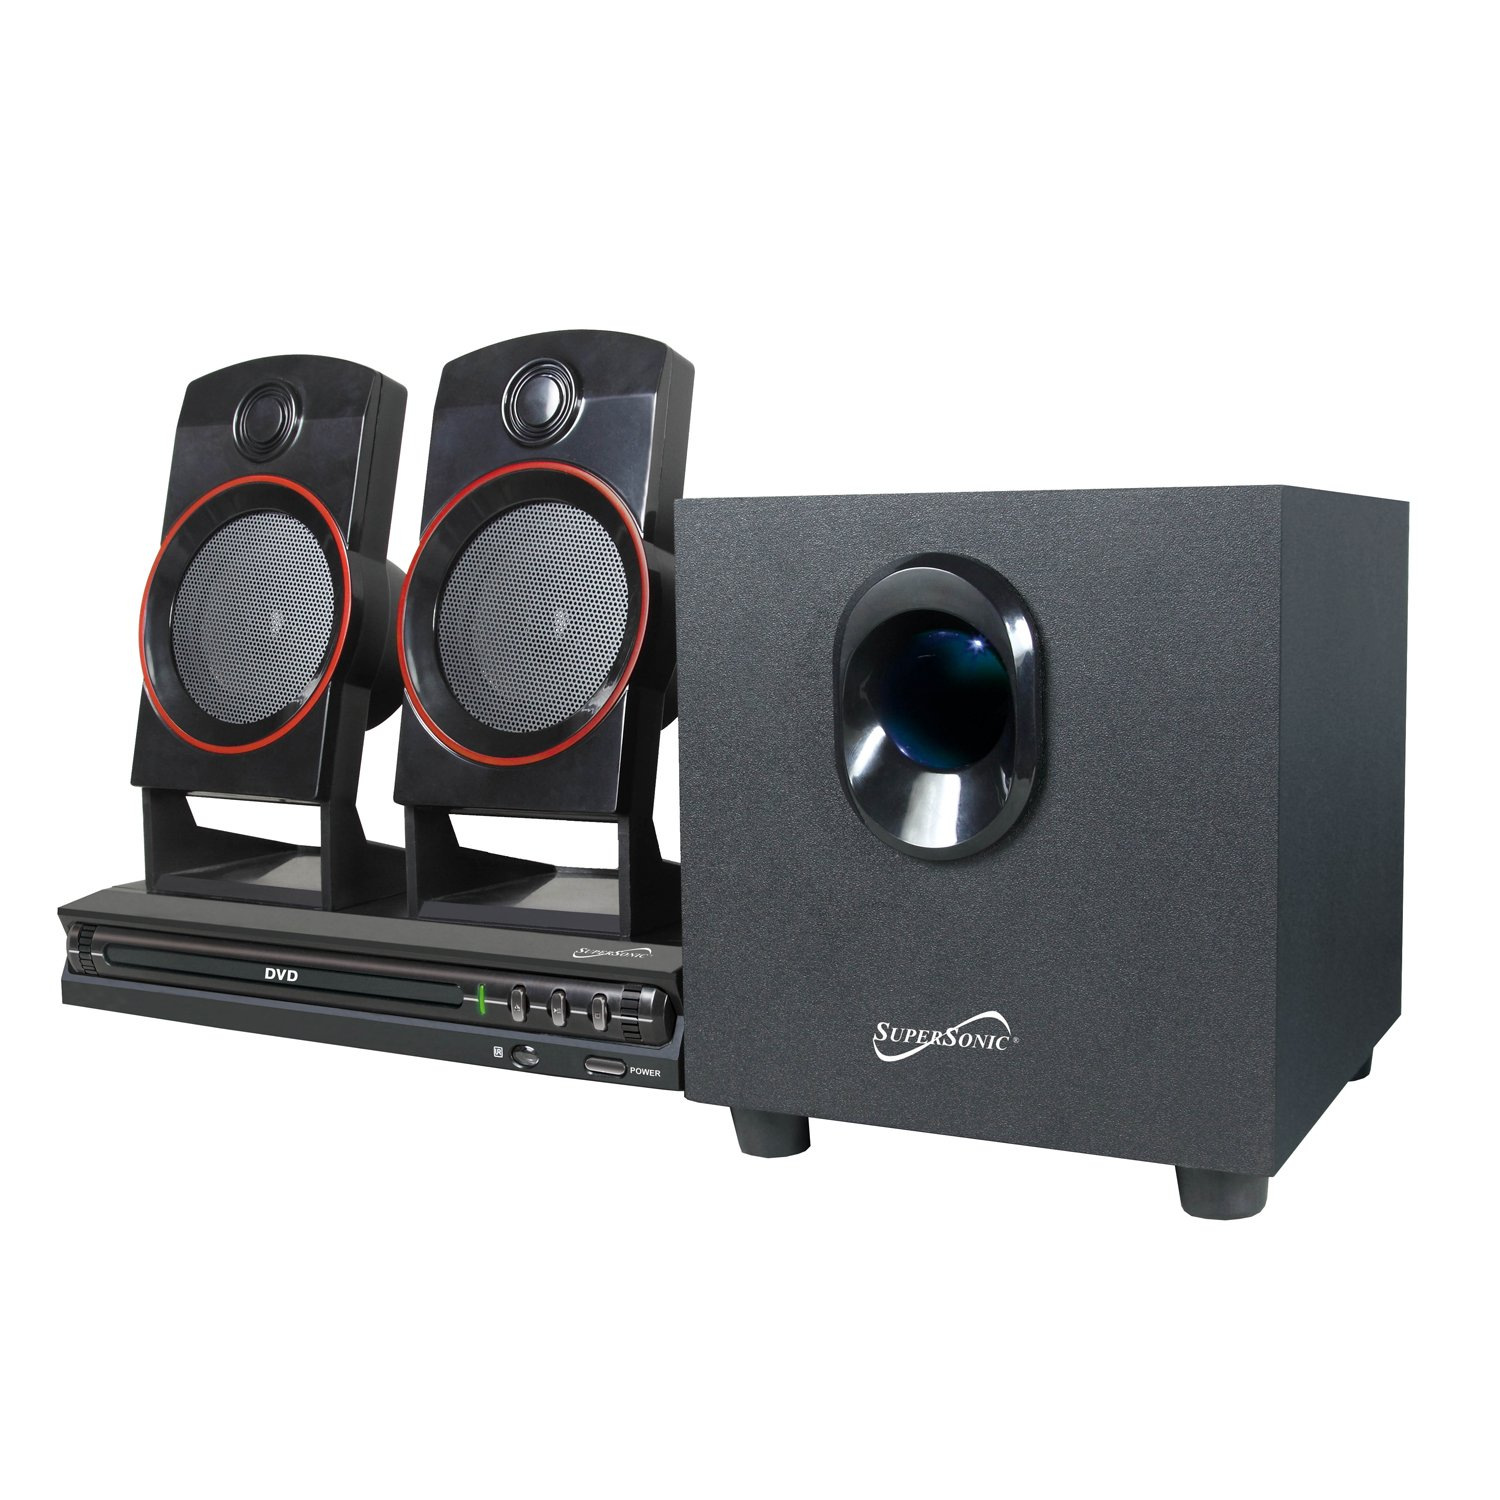 Amazon 21 Channel Home Theater System Home Kitchen